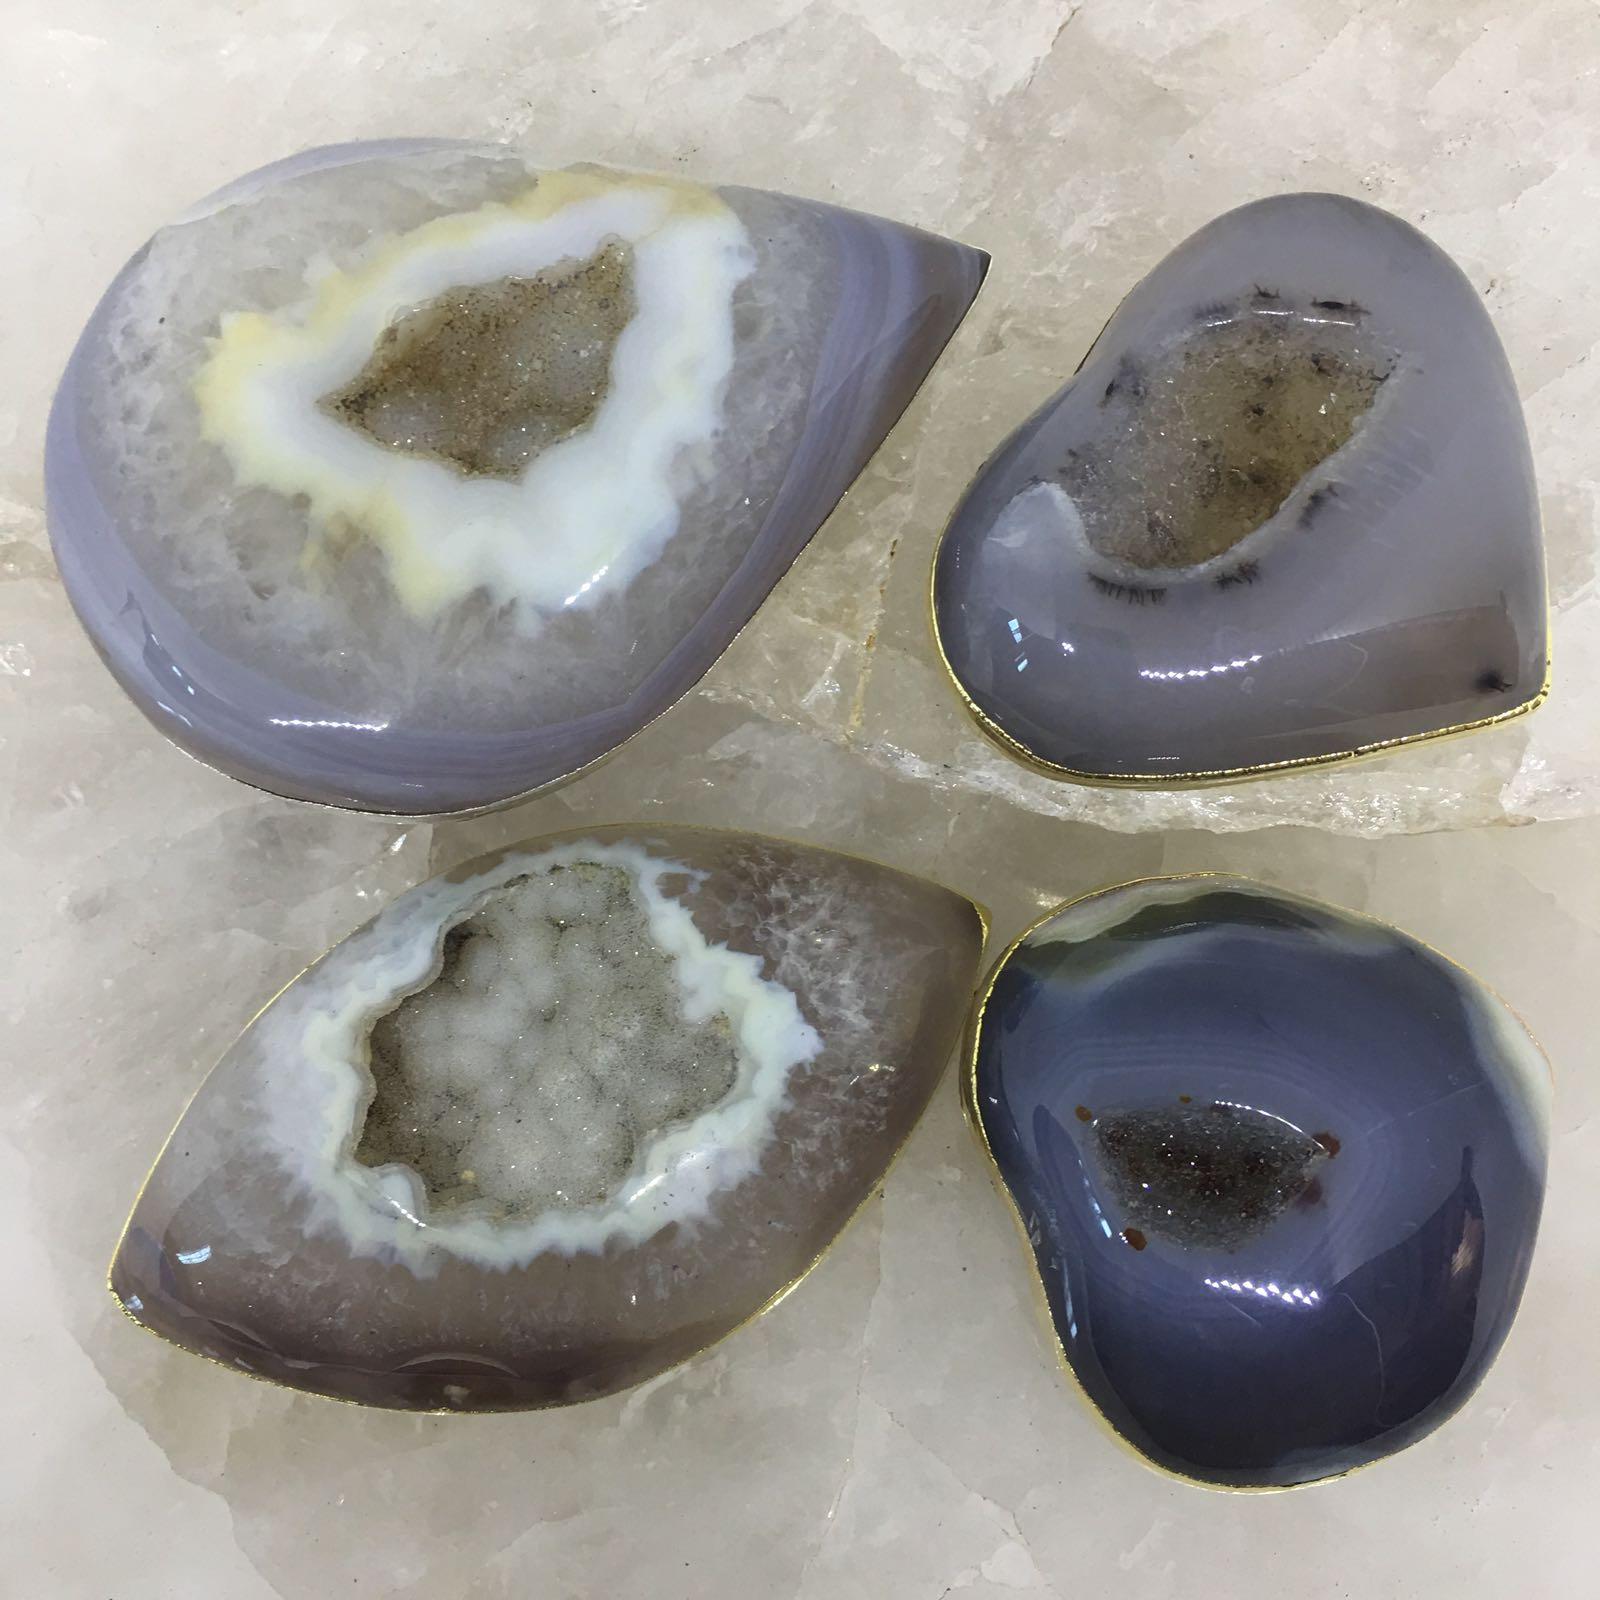 Stones from Uruguay - Plated Agate Geode Druzy  Cabochons for Gift  & Meditation